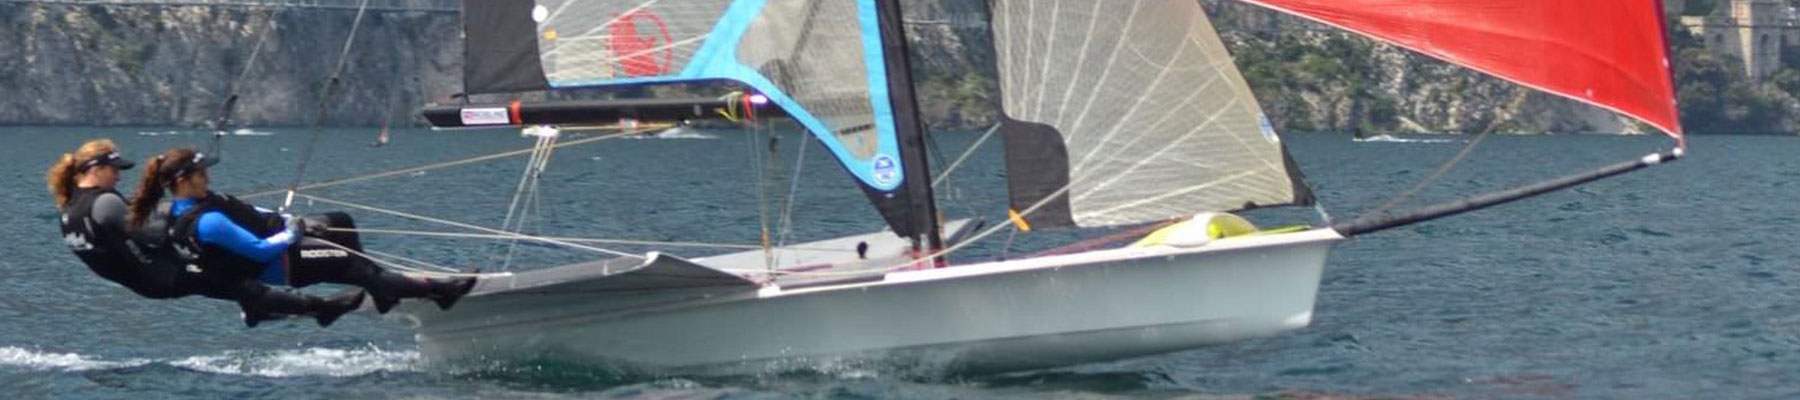 Stalder Speri Sailing Team